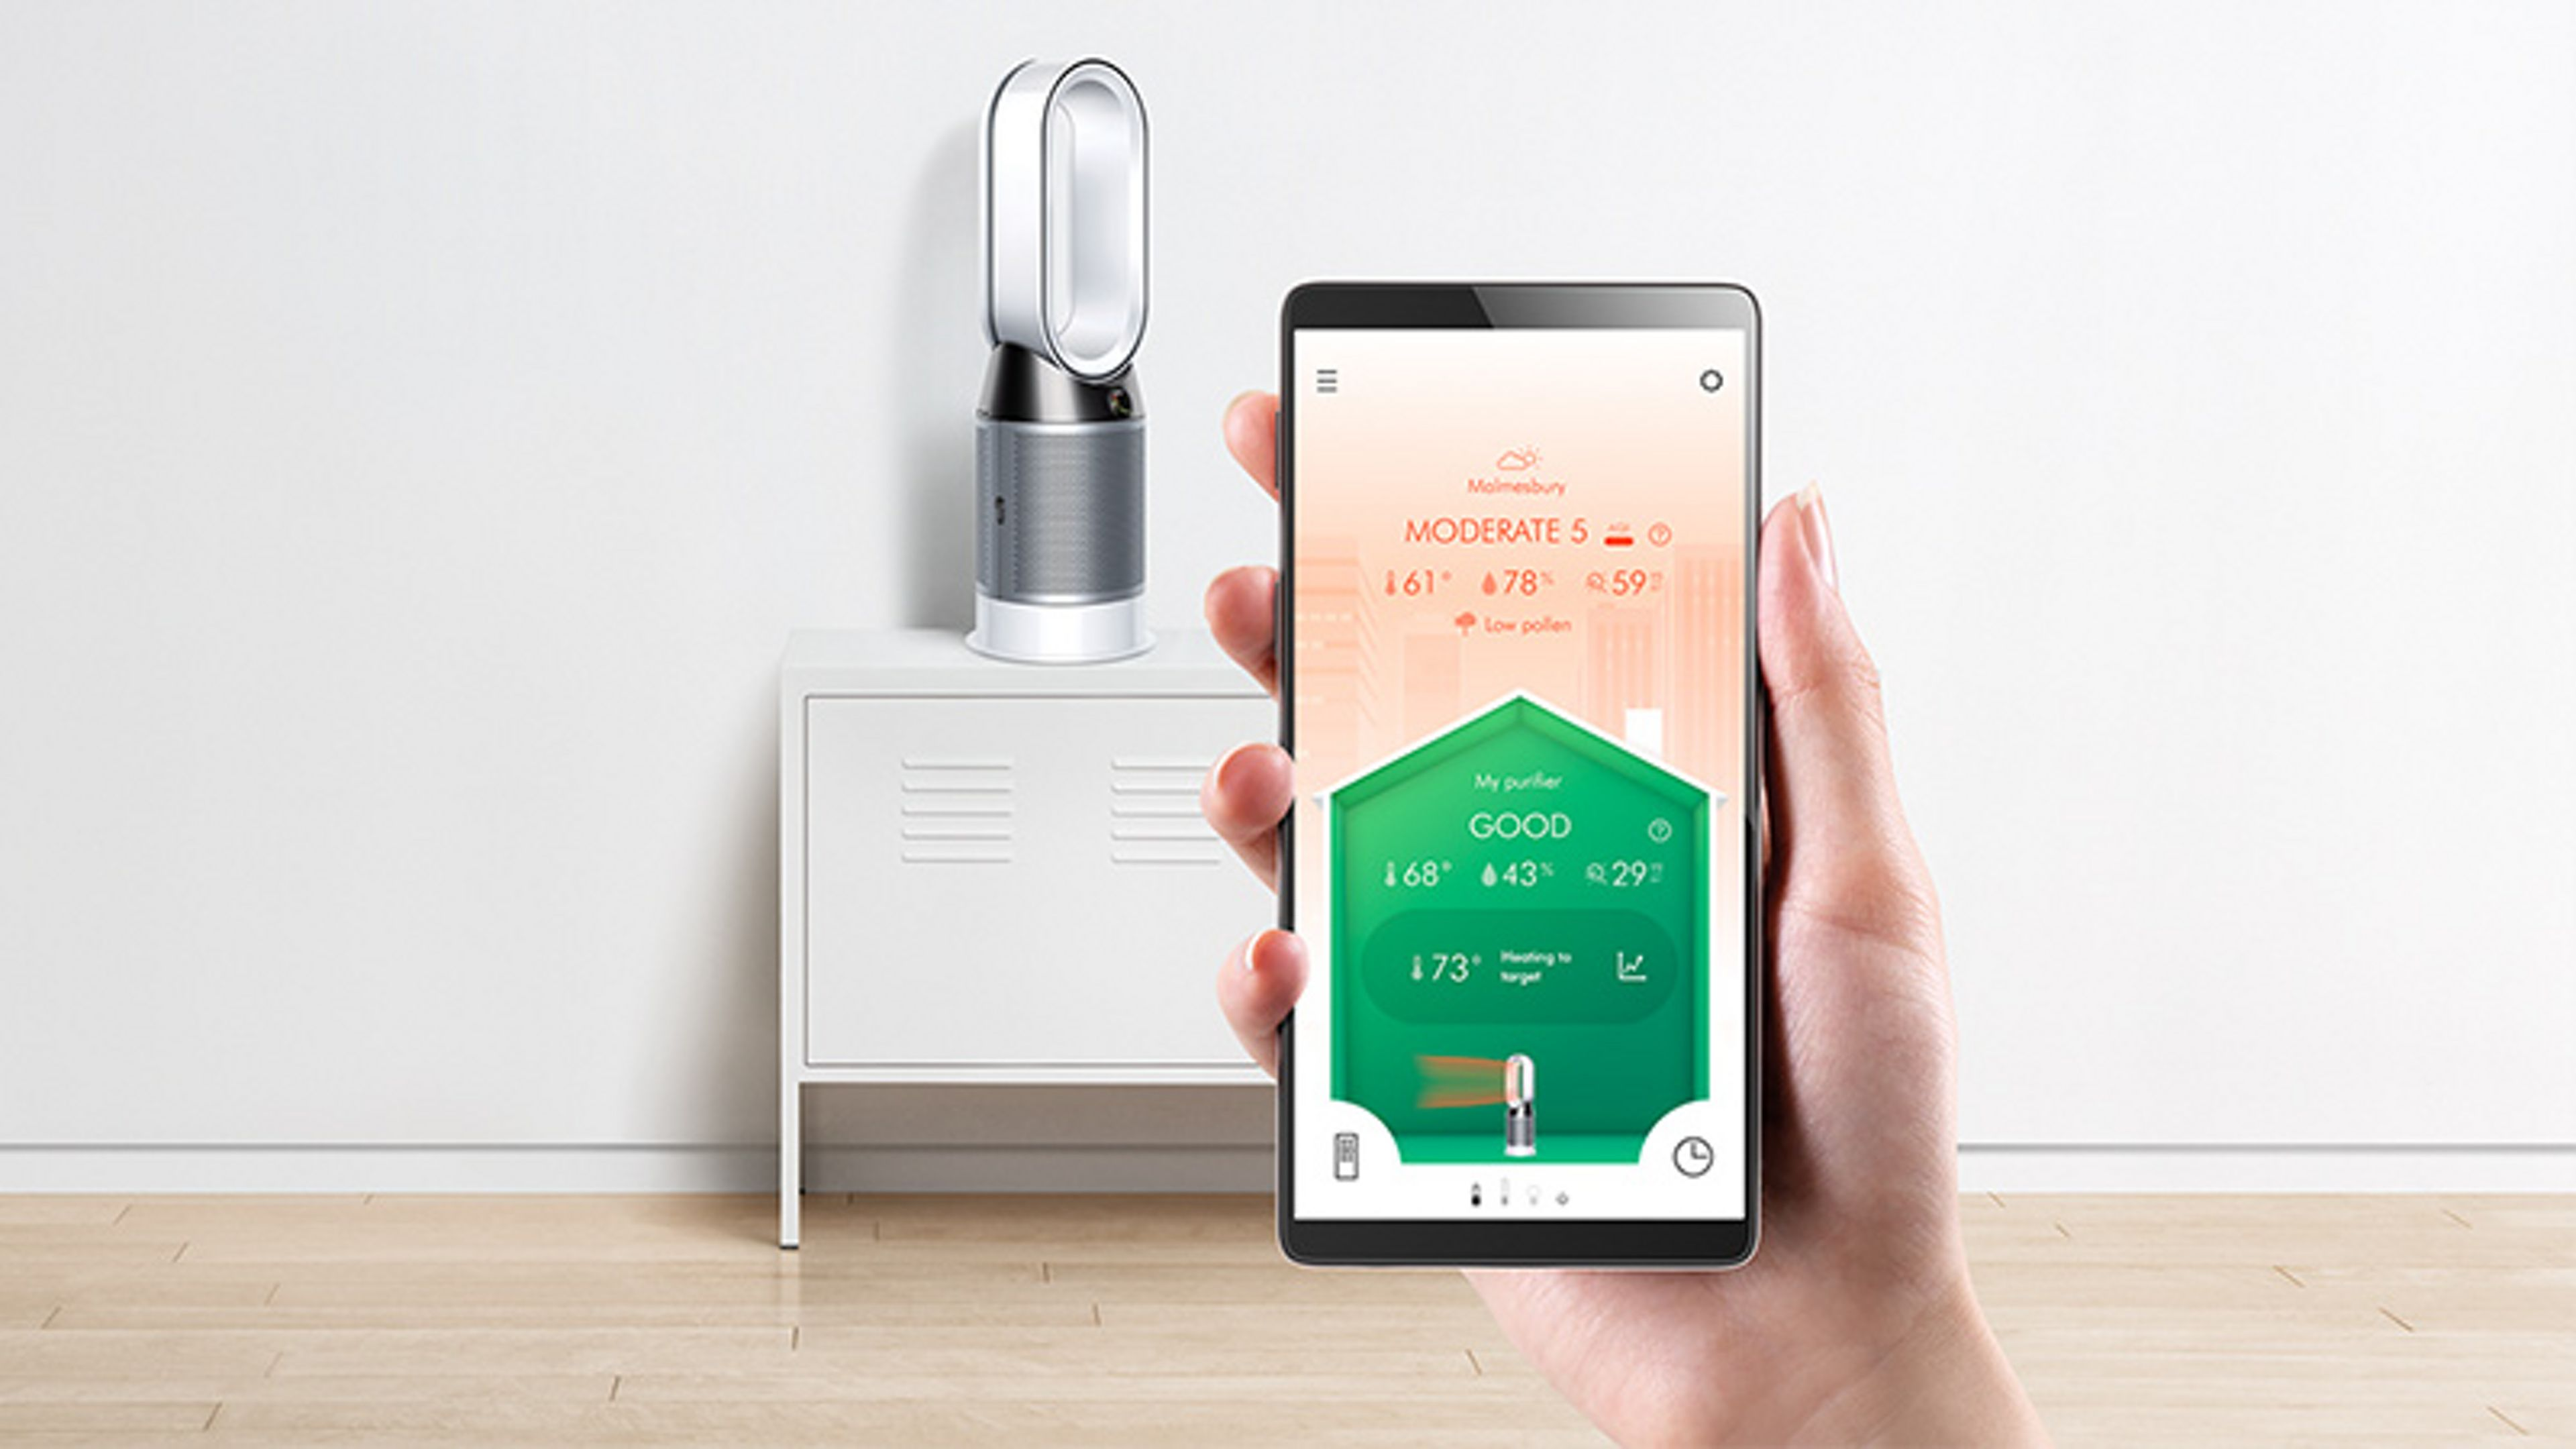 Demonstration of the Dyson Link app